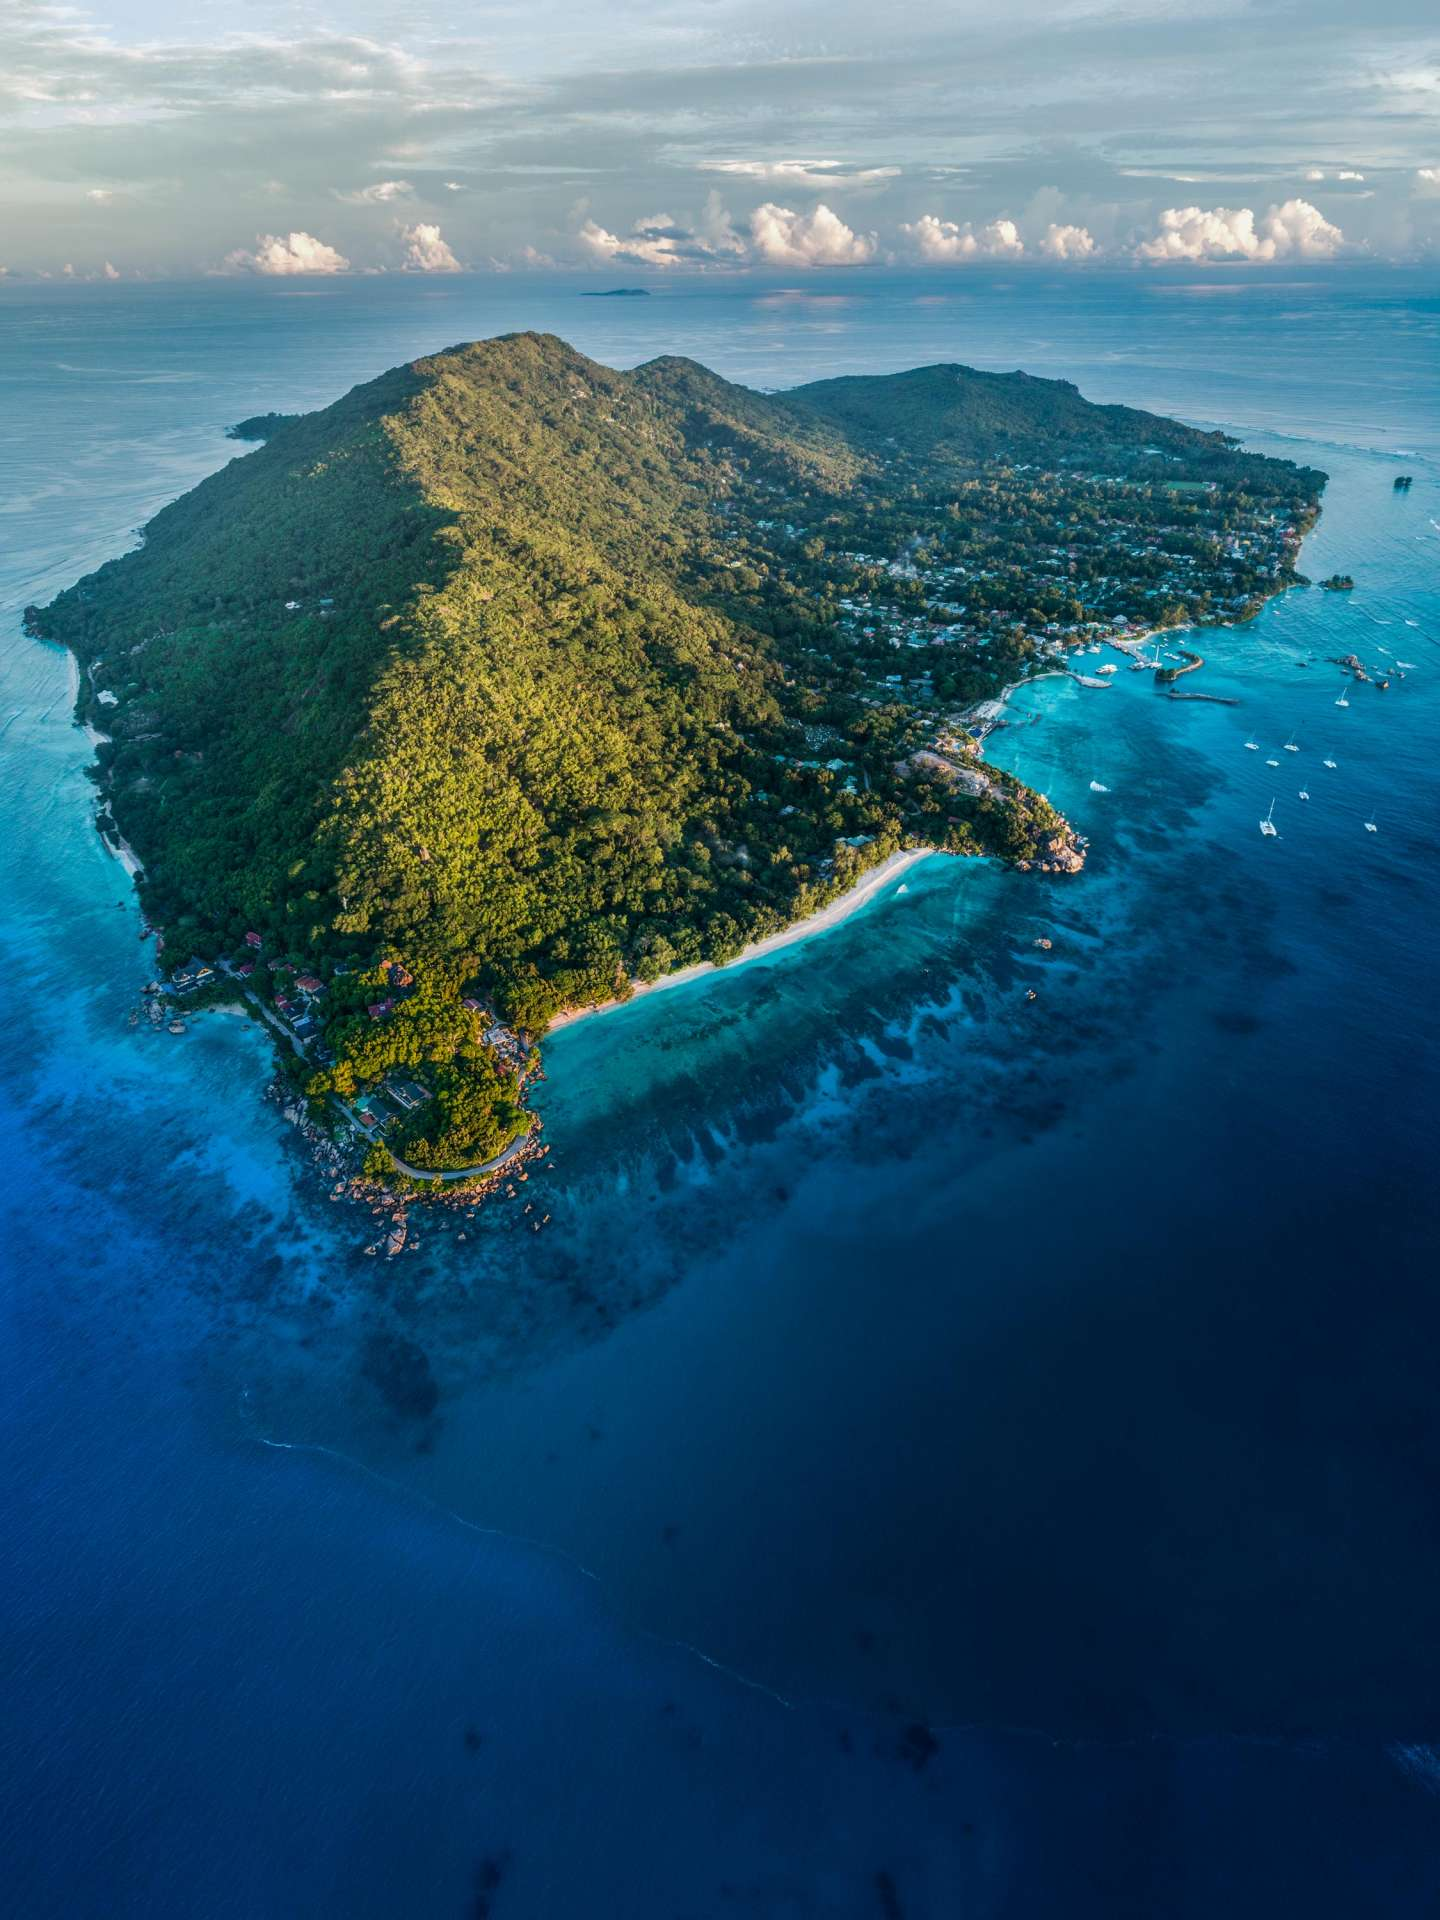 Seychelles La Digue Island drone aerial view enrico pescantini from above